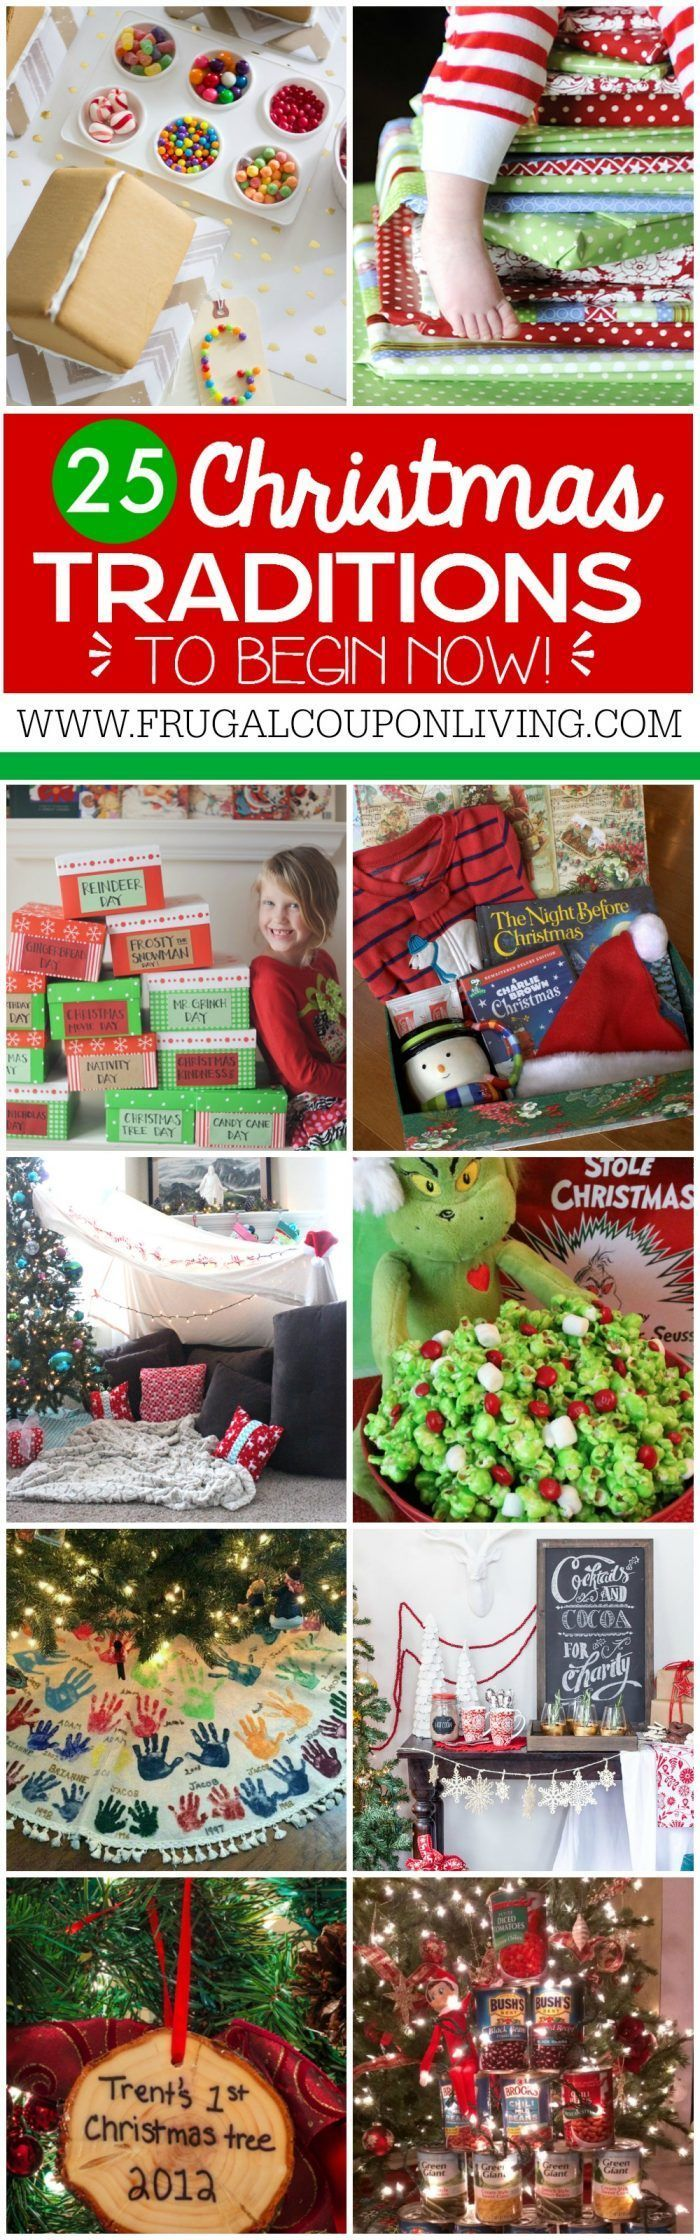 25 unique Christmas traditions ideas on Pinterest  Holiday